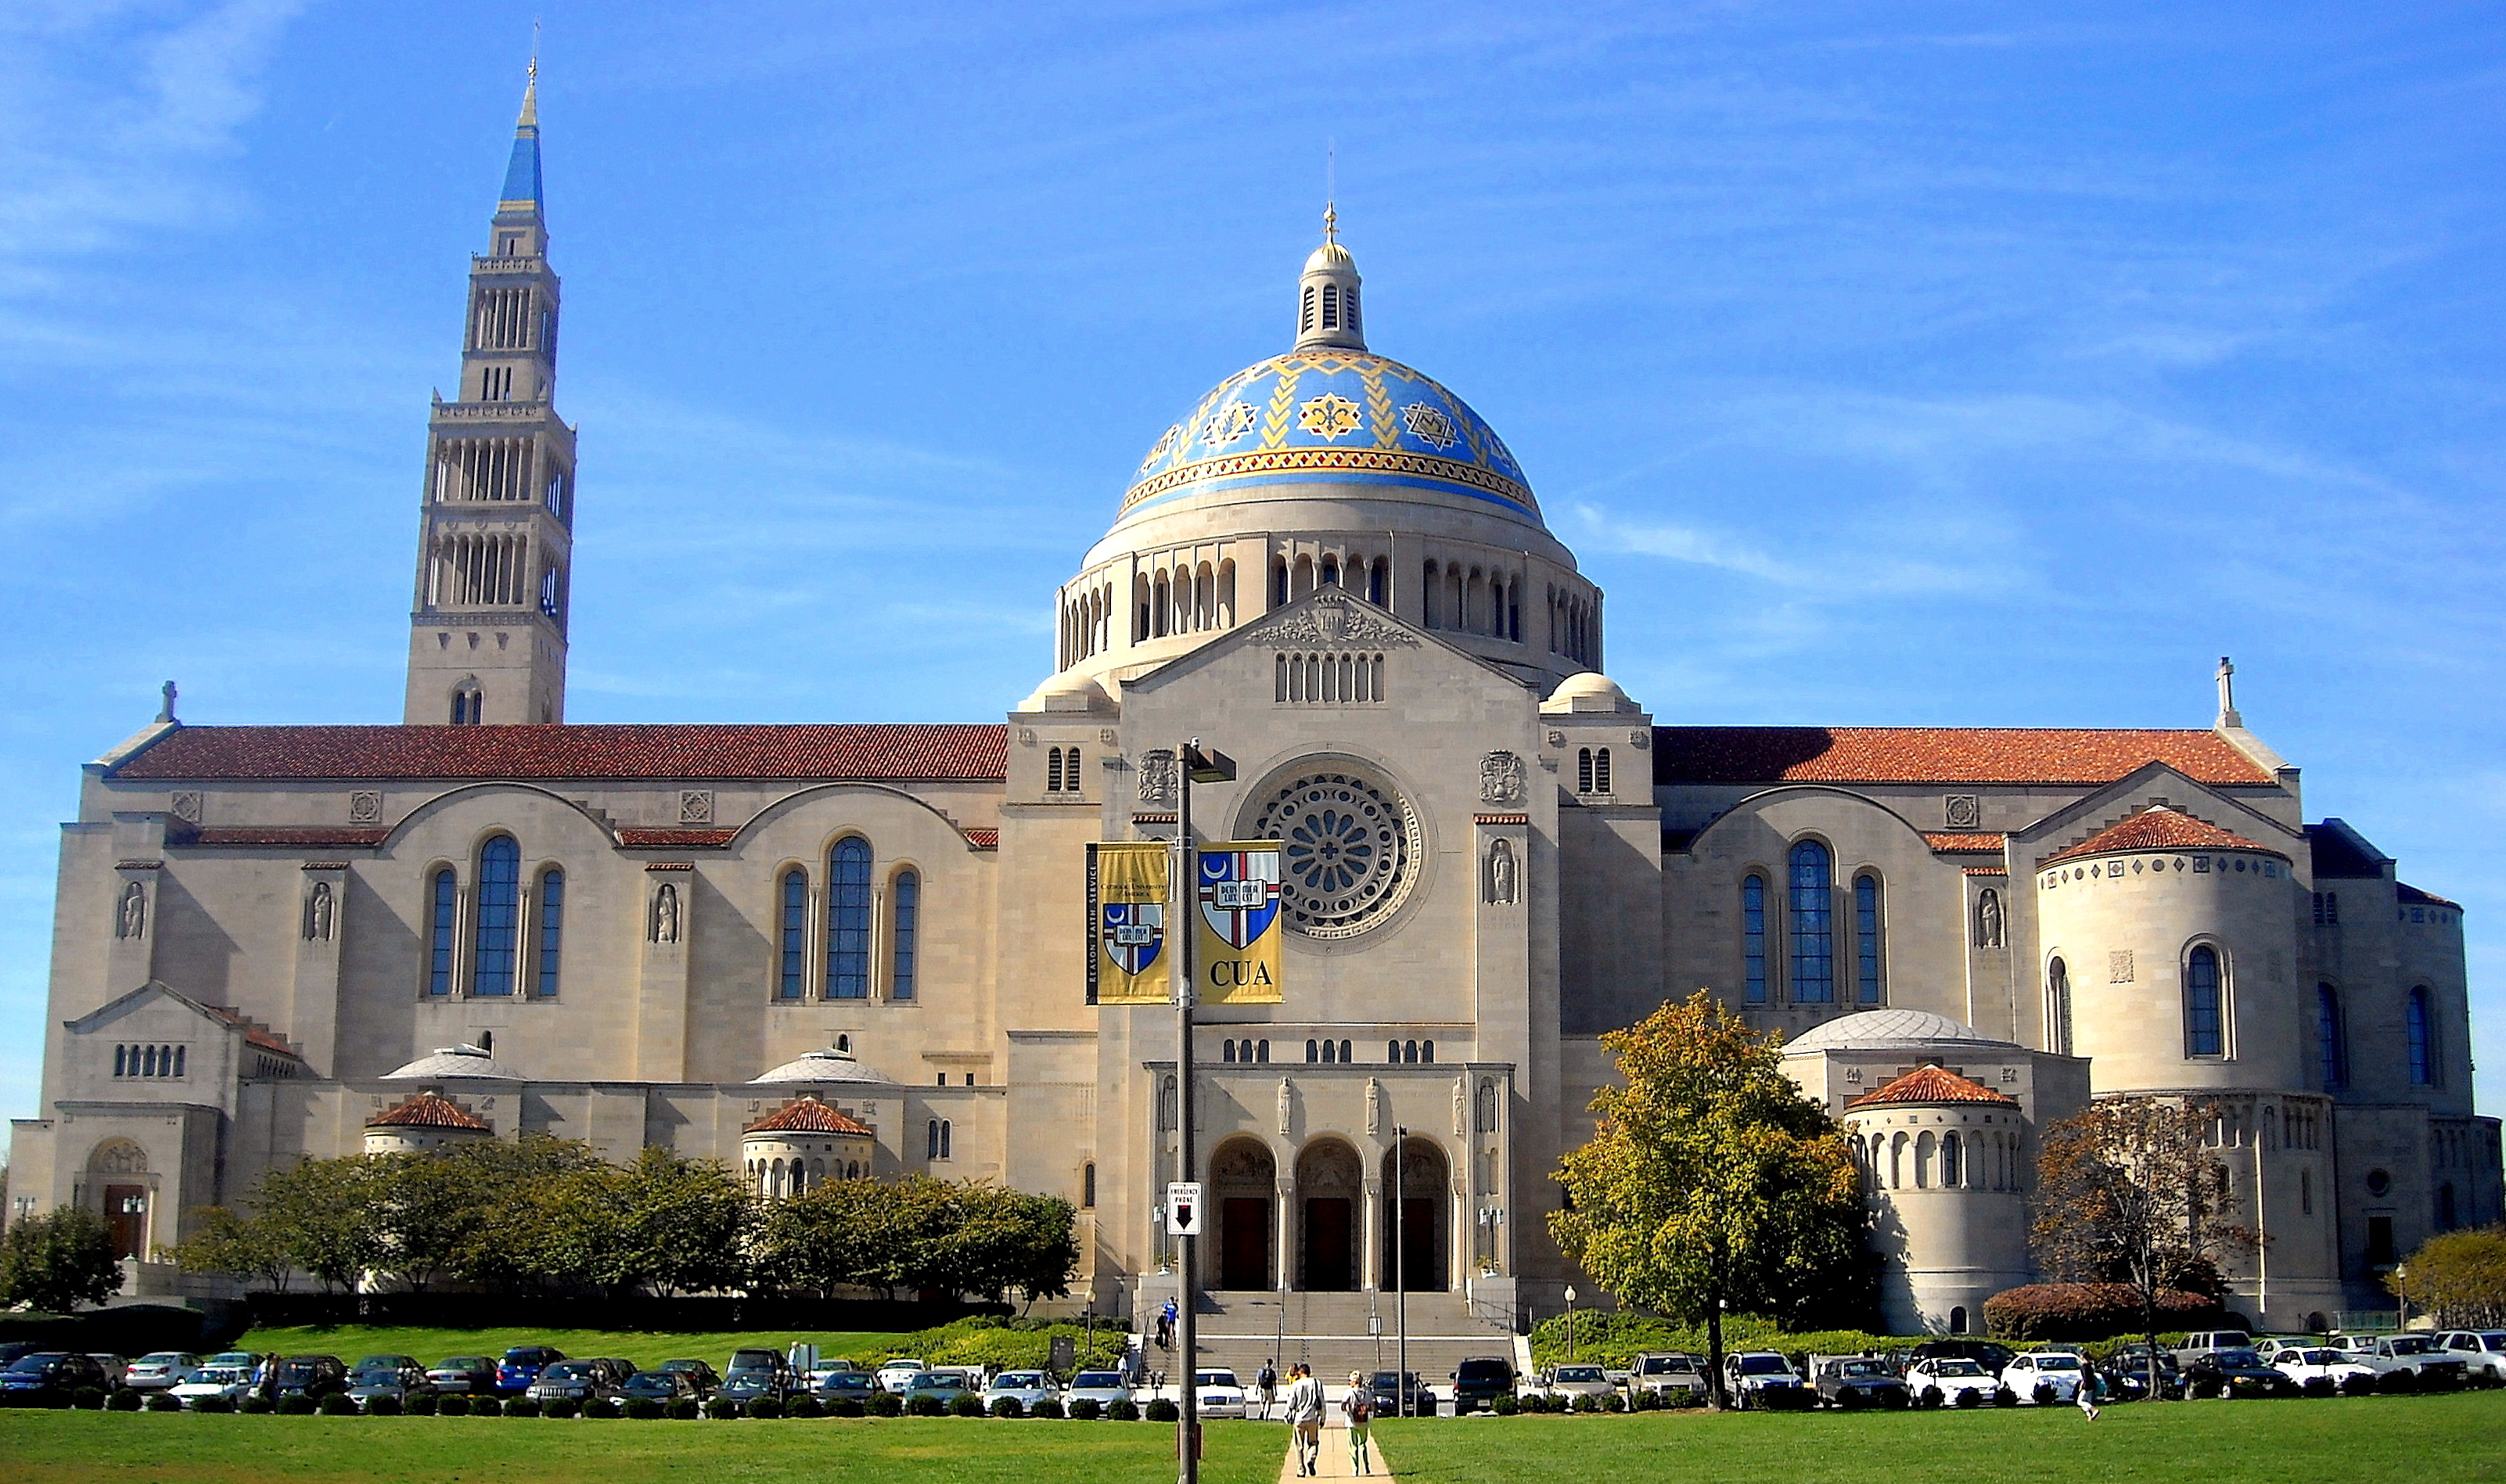 Basilica_of_the_National_Shrine_of_the_Immaculate_Conception.jpg